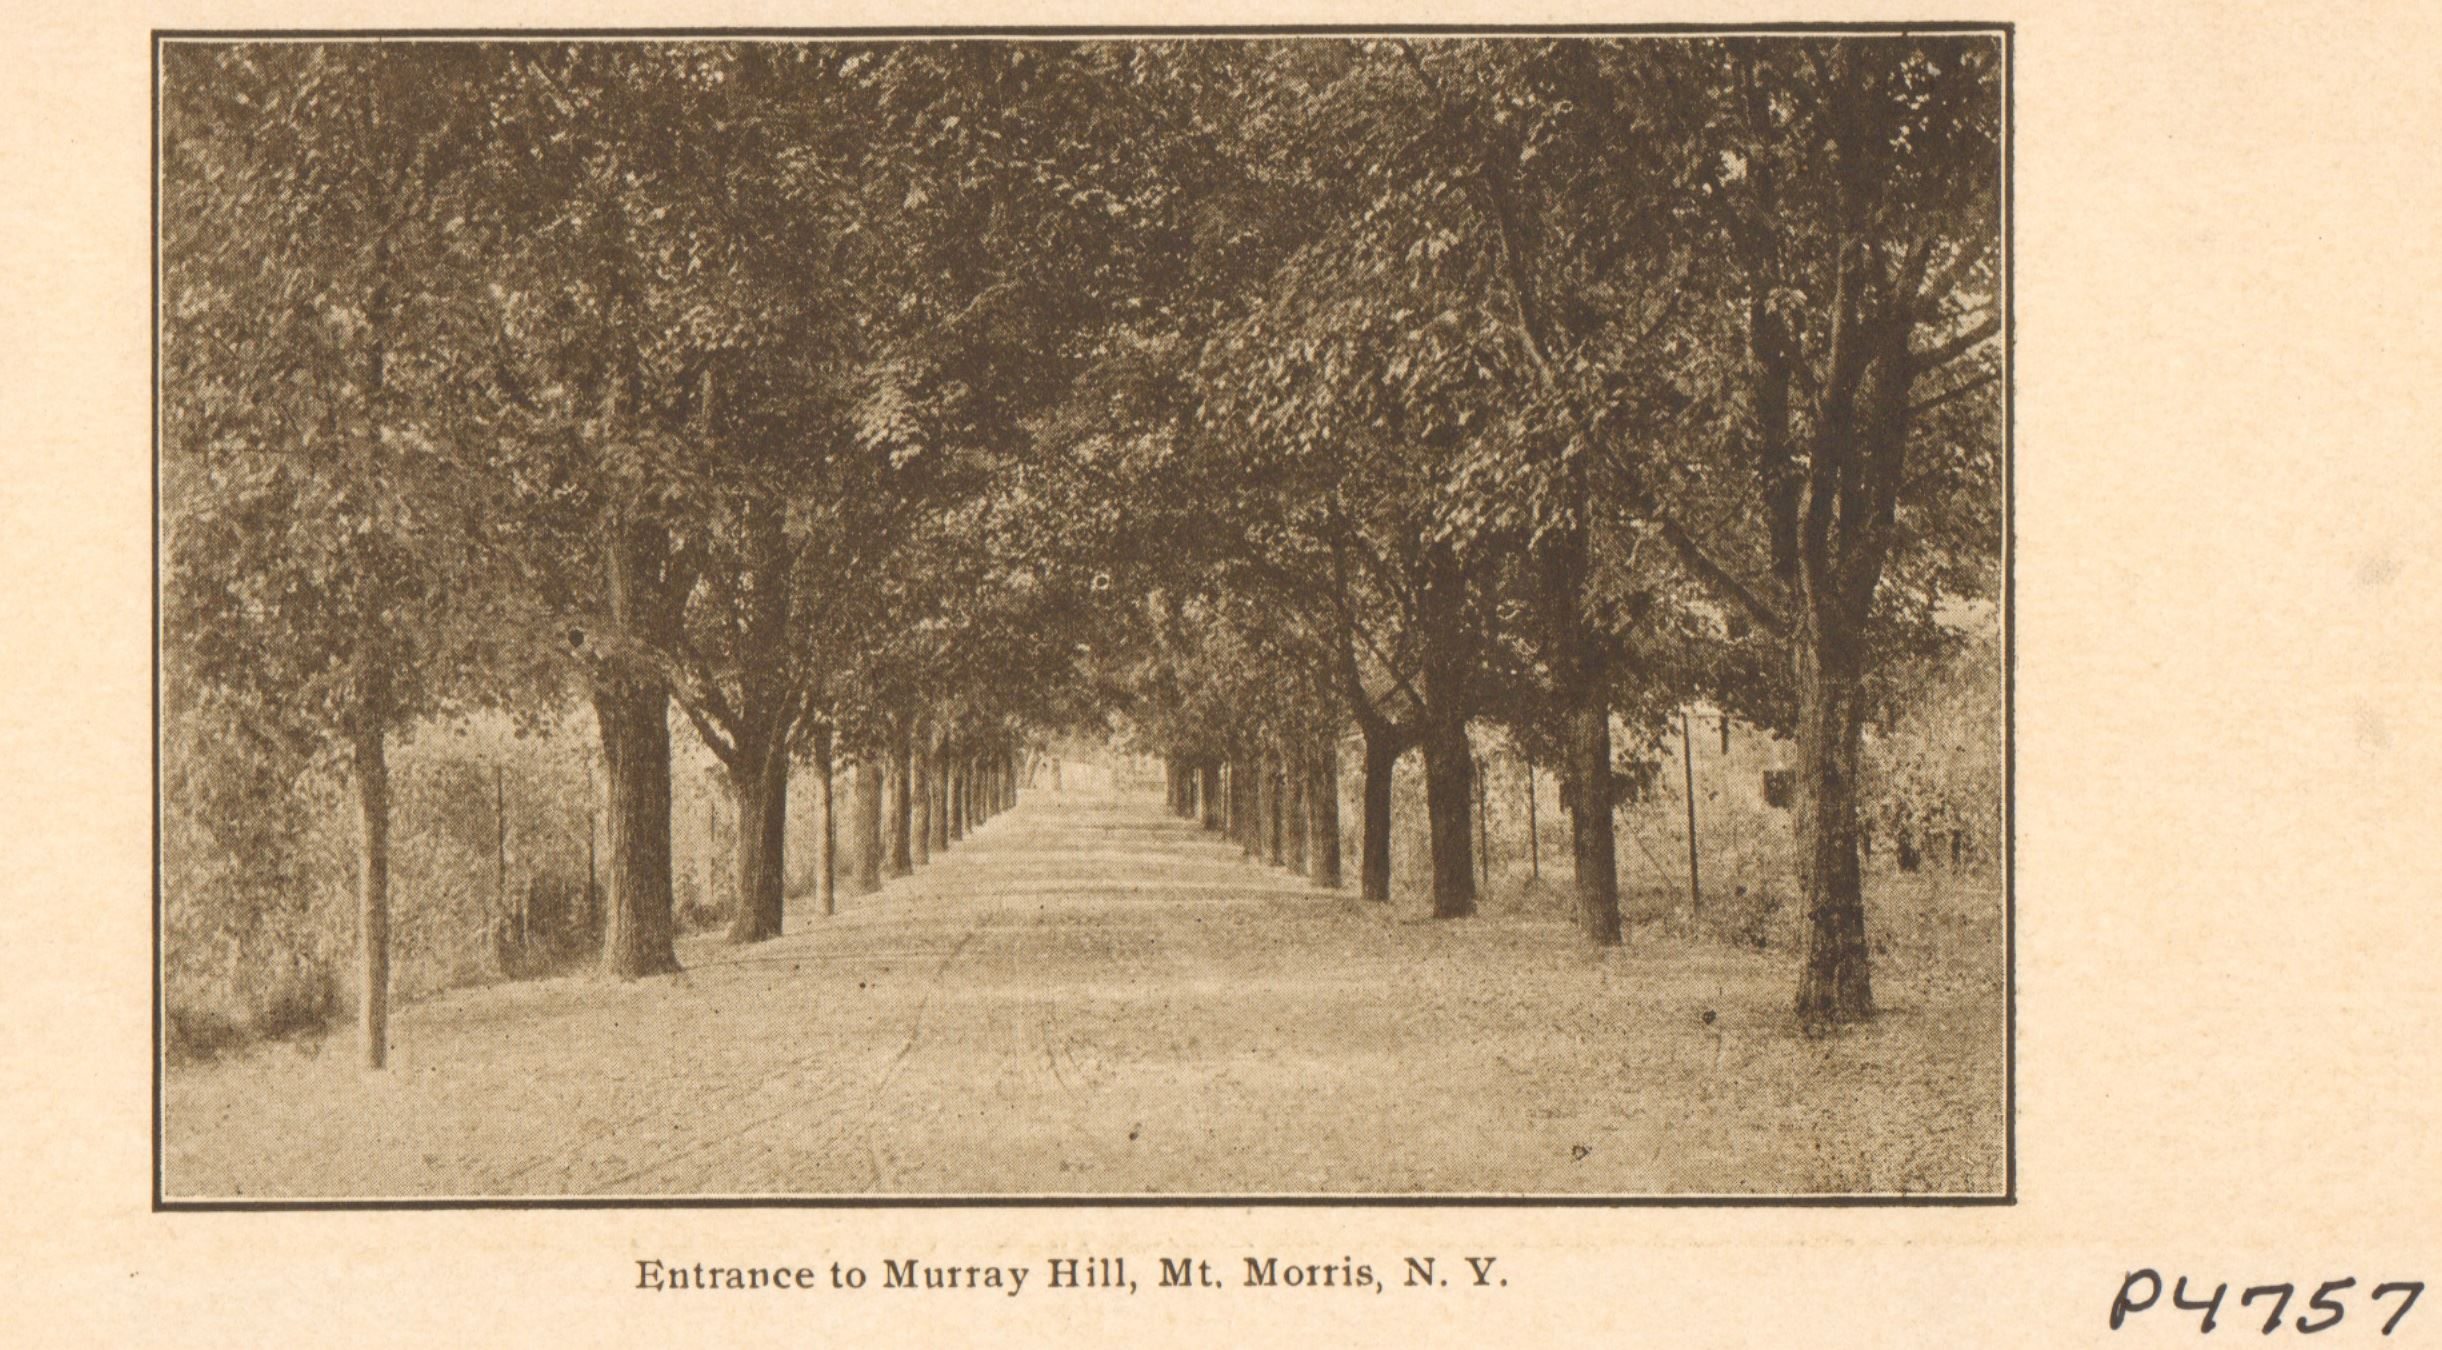 Image of driveway entrance to Murray Hill